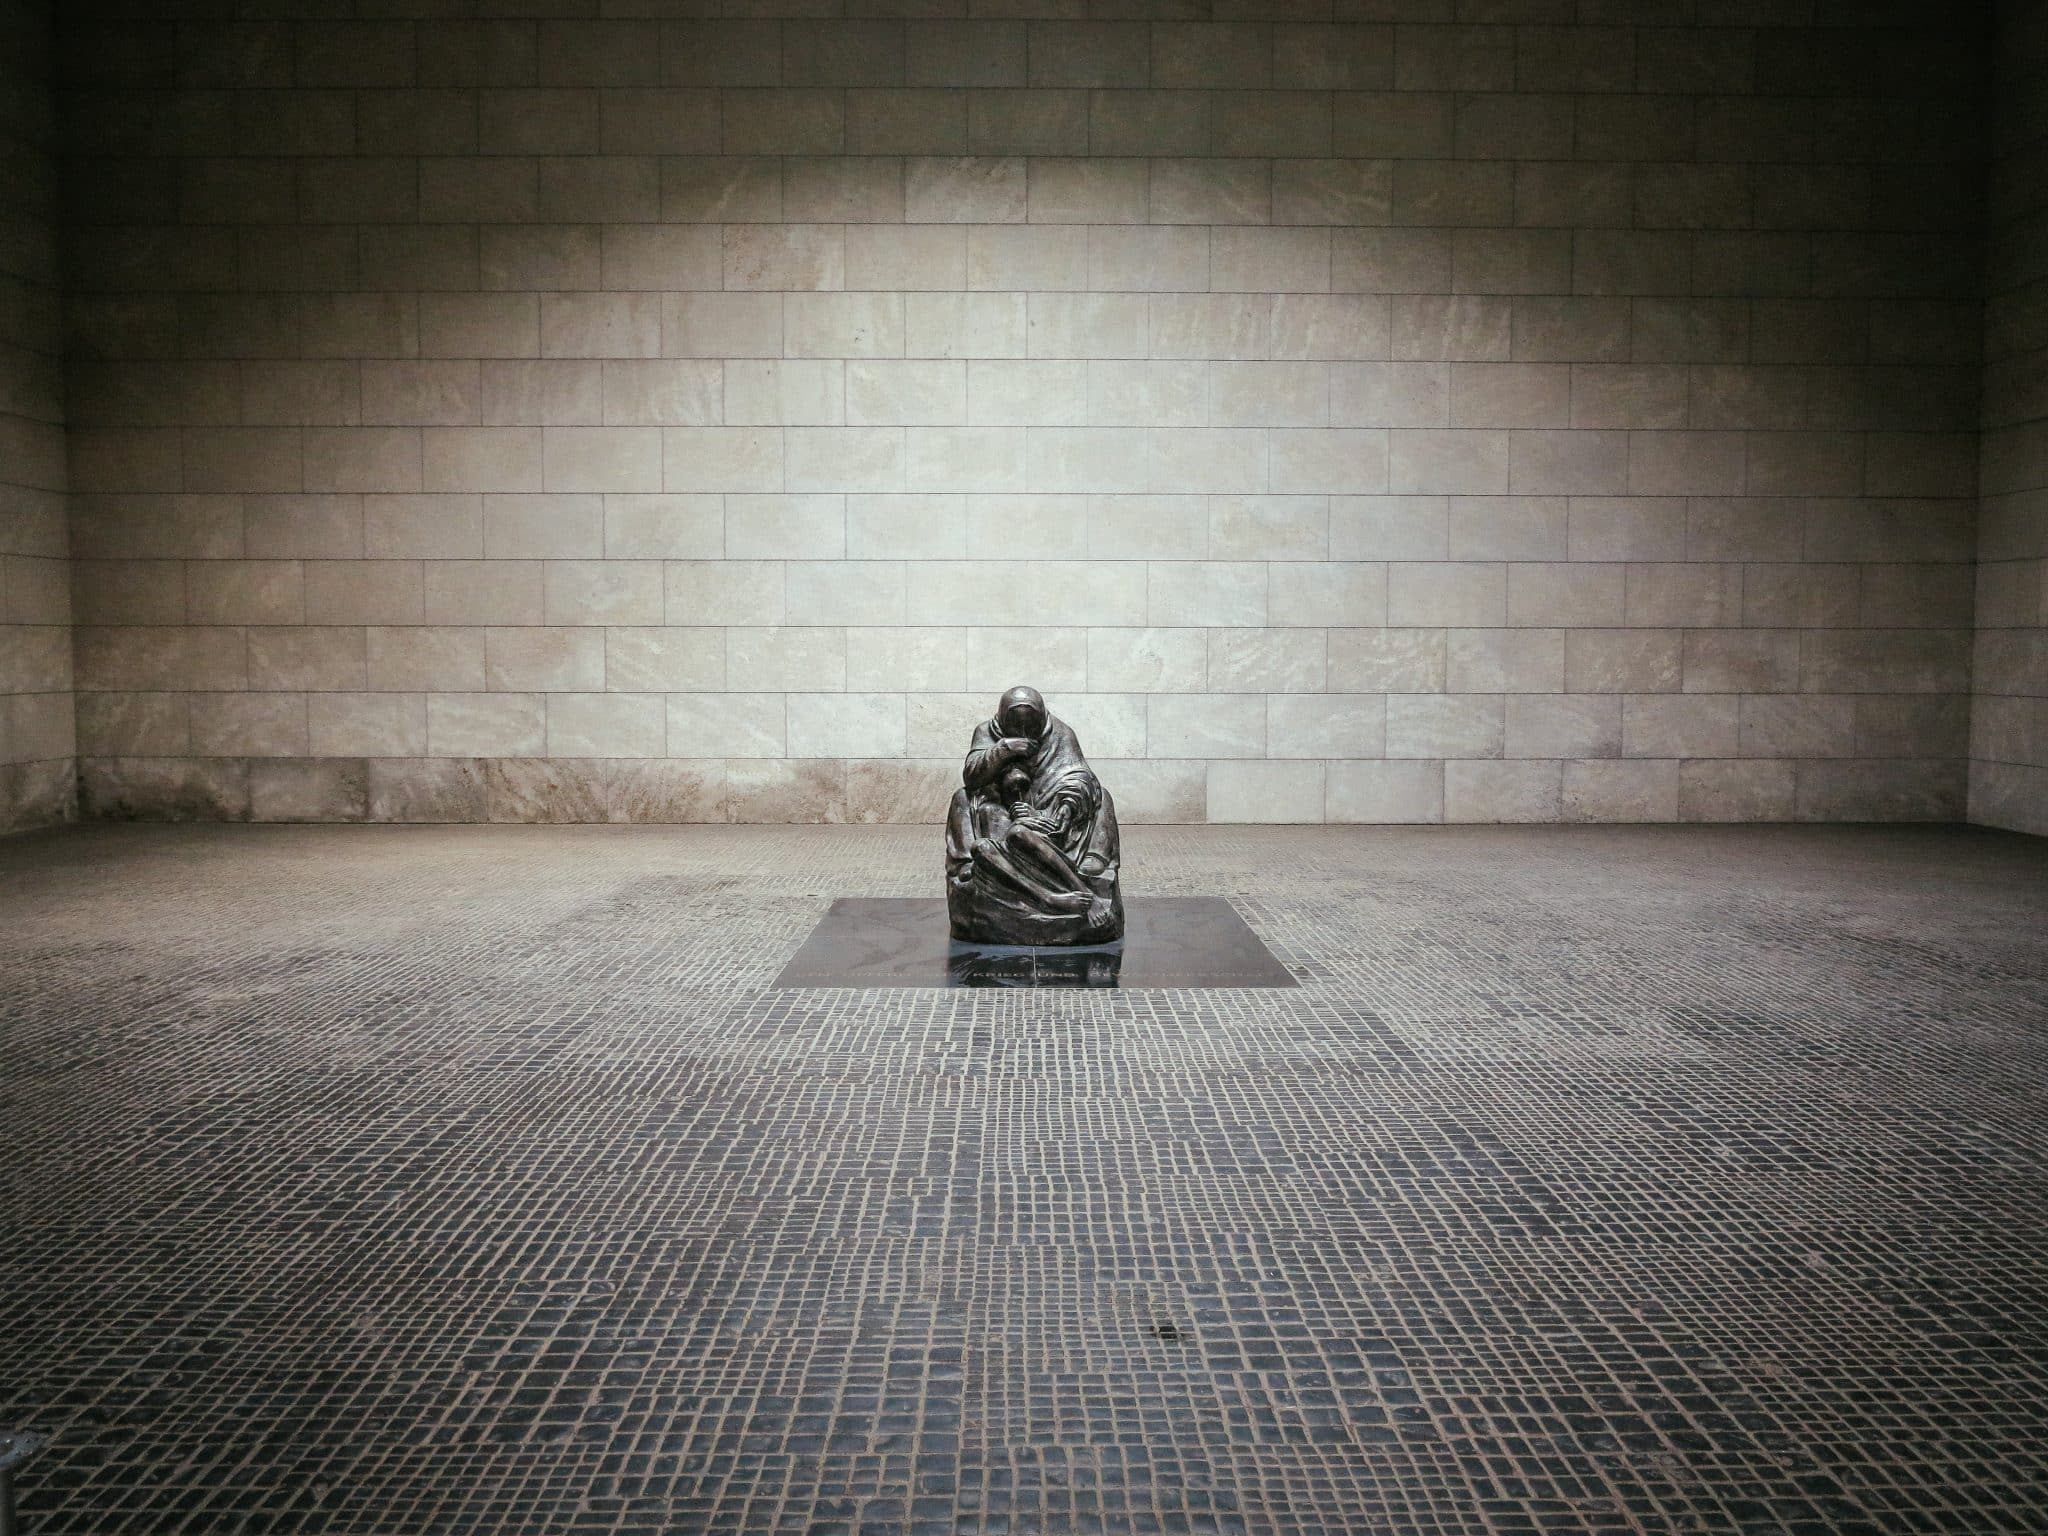 Neue Wache In Berin - Memorial To The Victims Of War And Tyranny